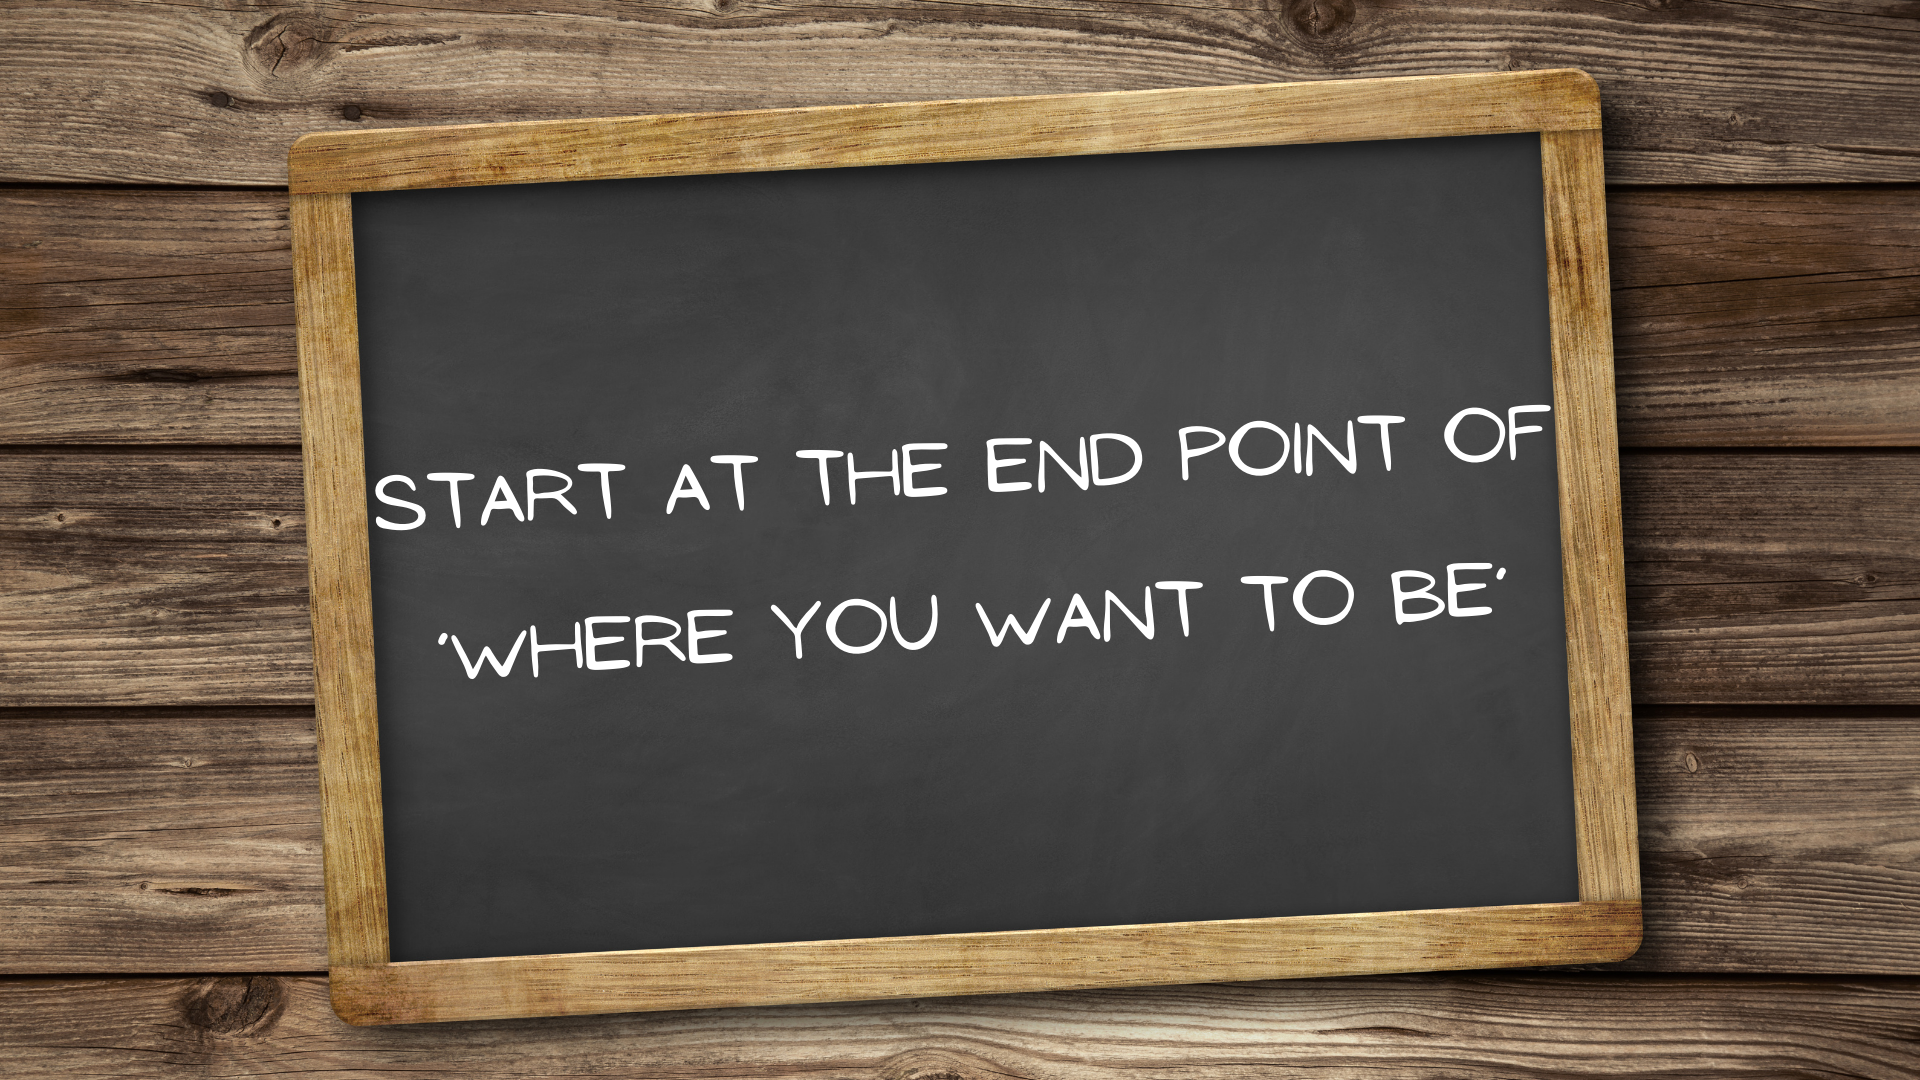 Start at the end point of 'where you want to be' - ThriveableBiz